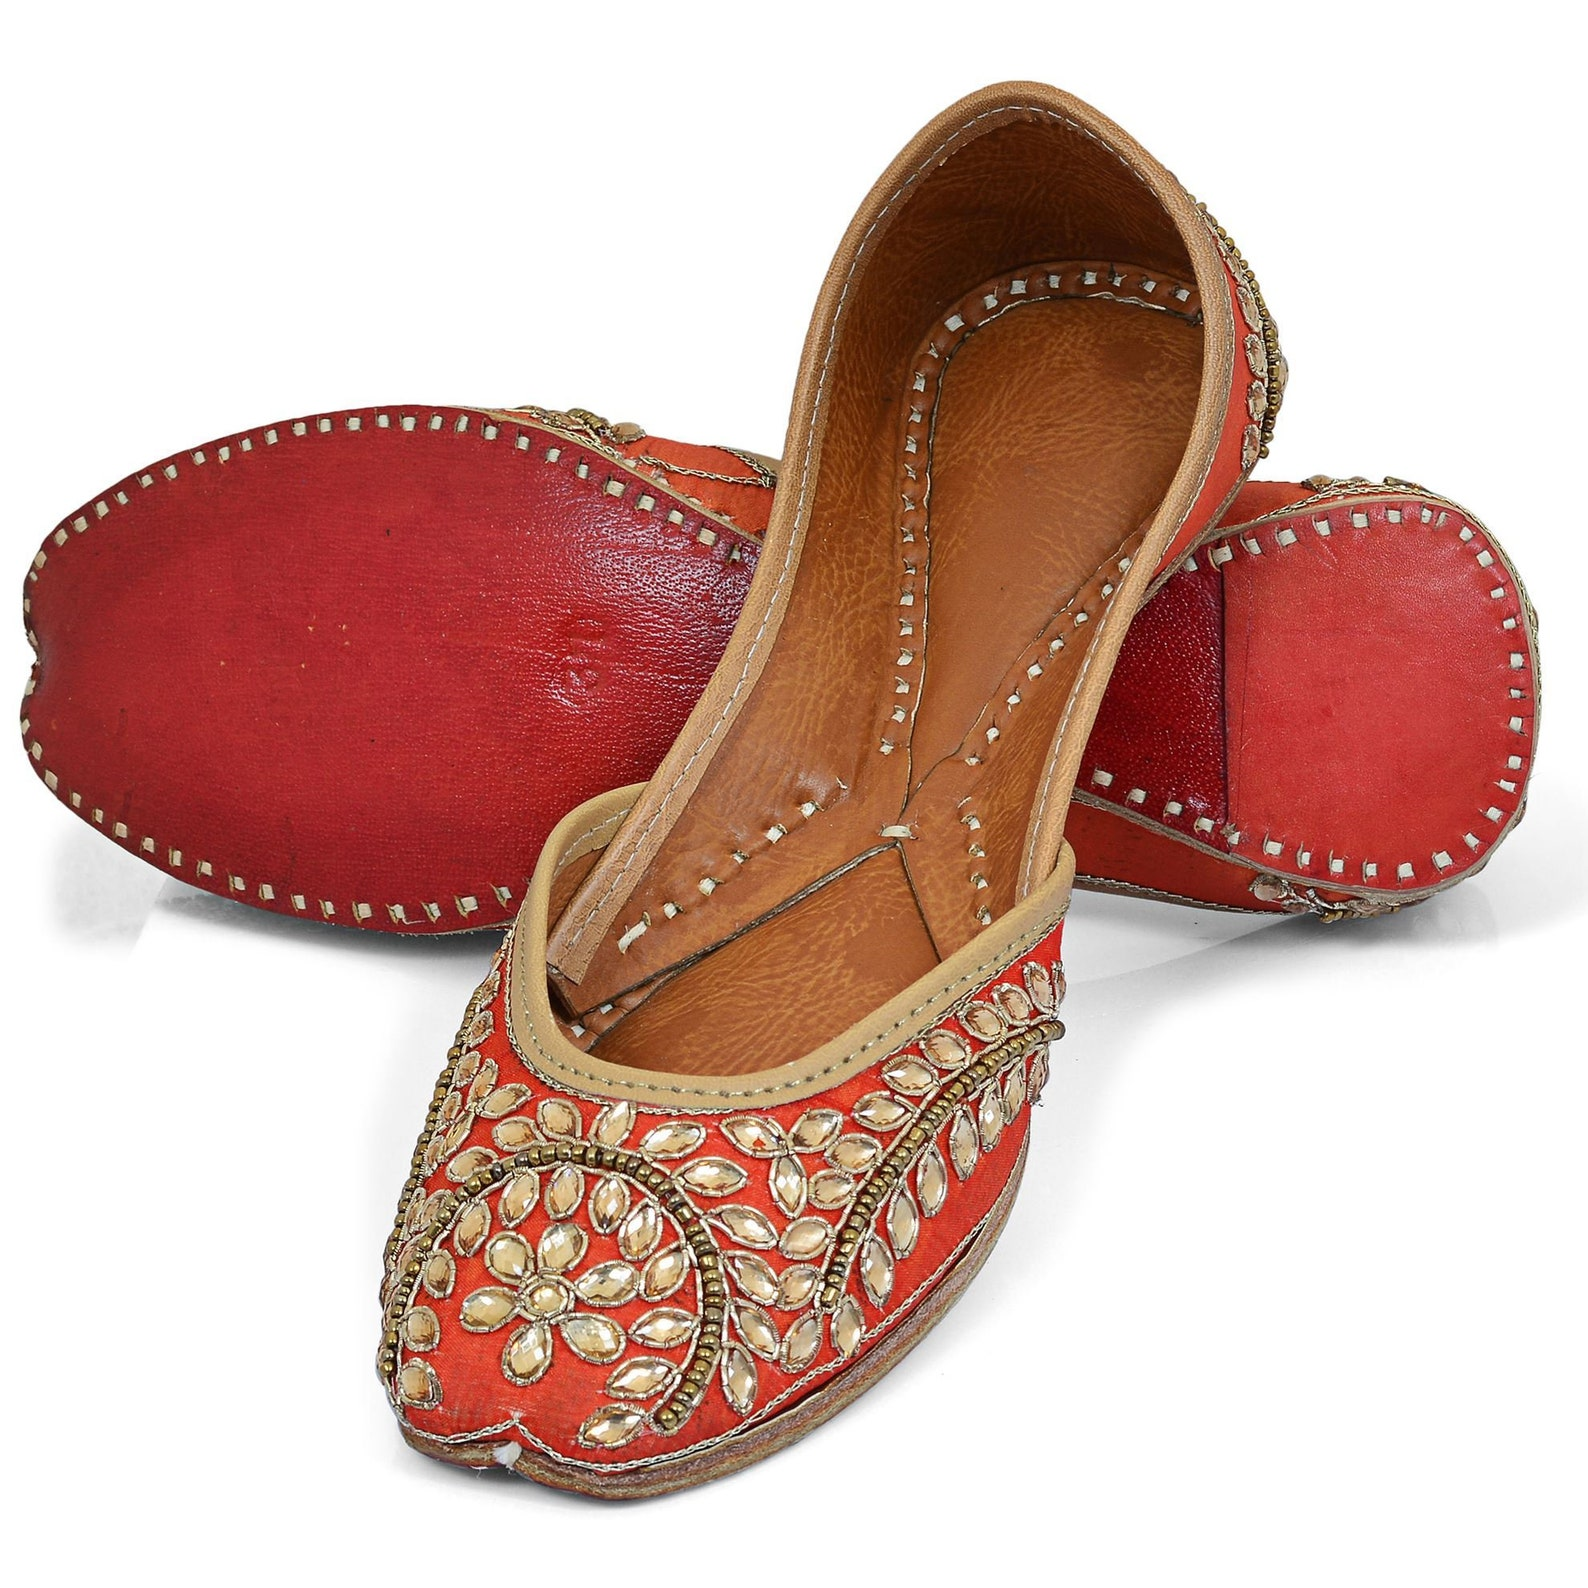 women handcrafted leather footwear/ gotta mojris / khussa shoes, punjabi juttis / ballet shoes, jooties with embroidery